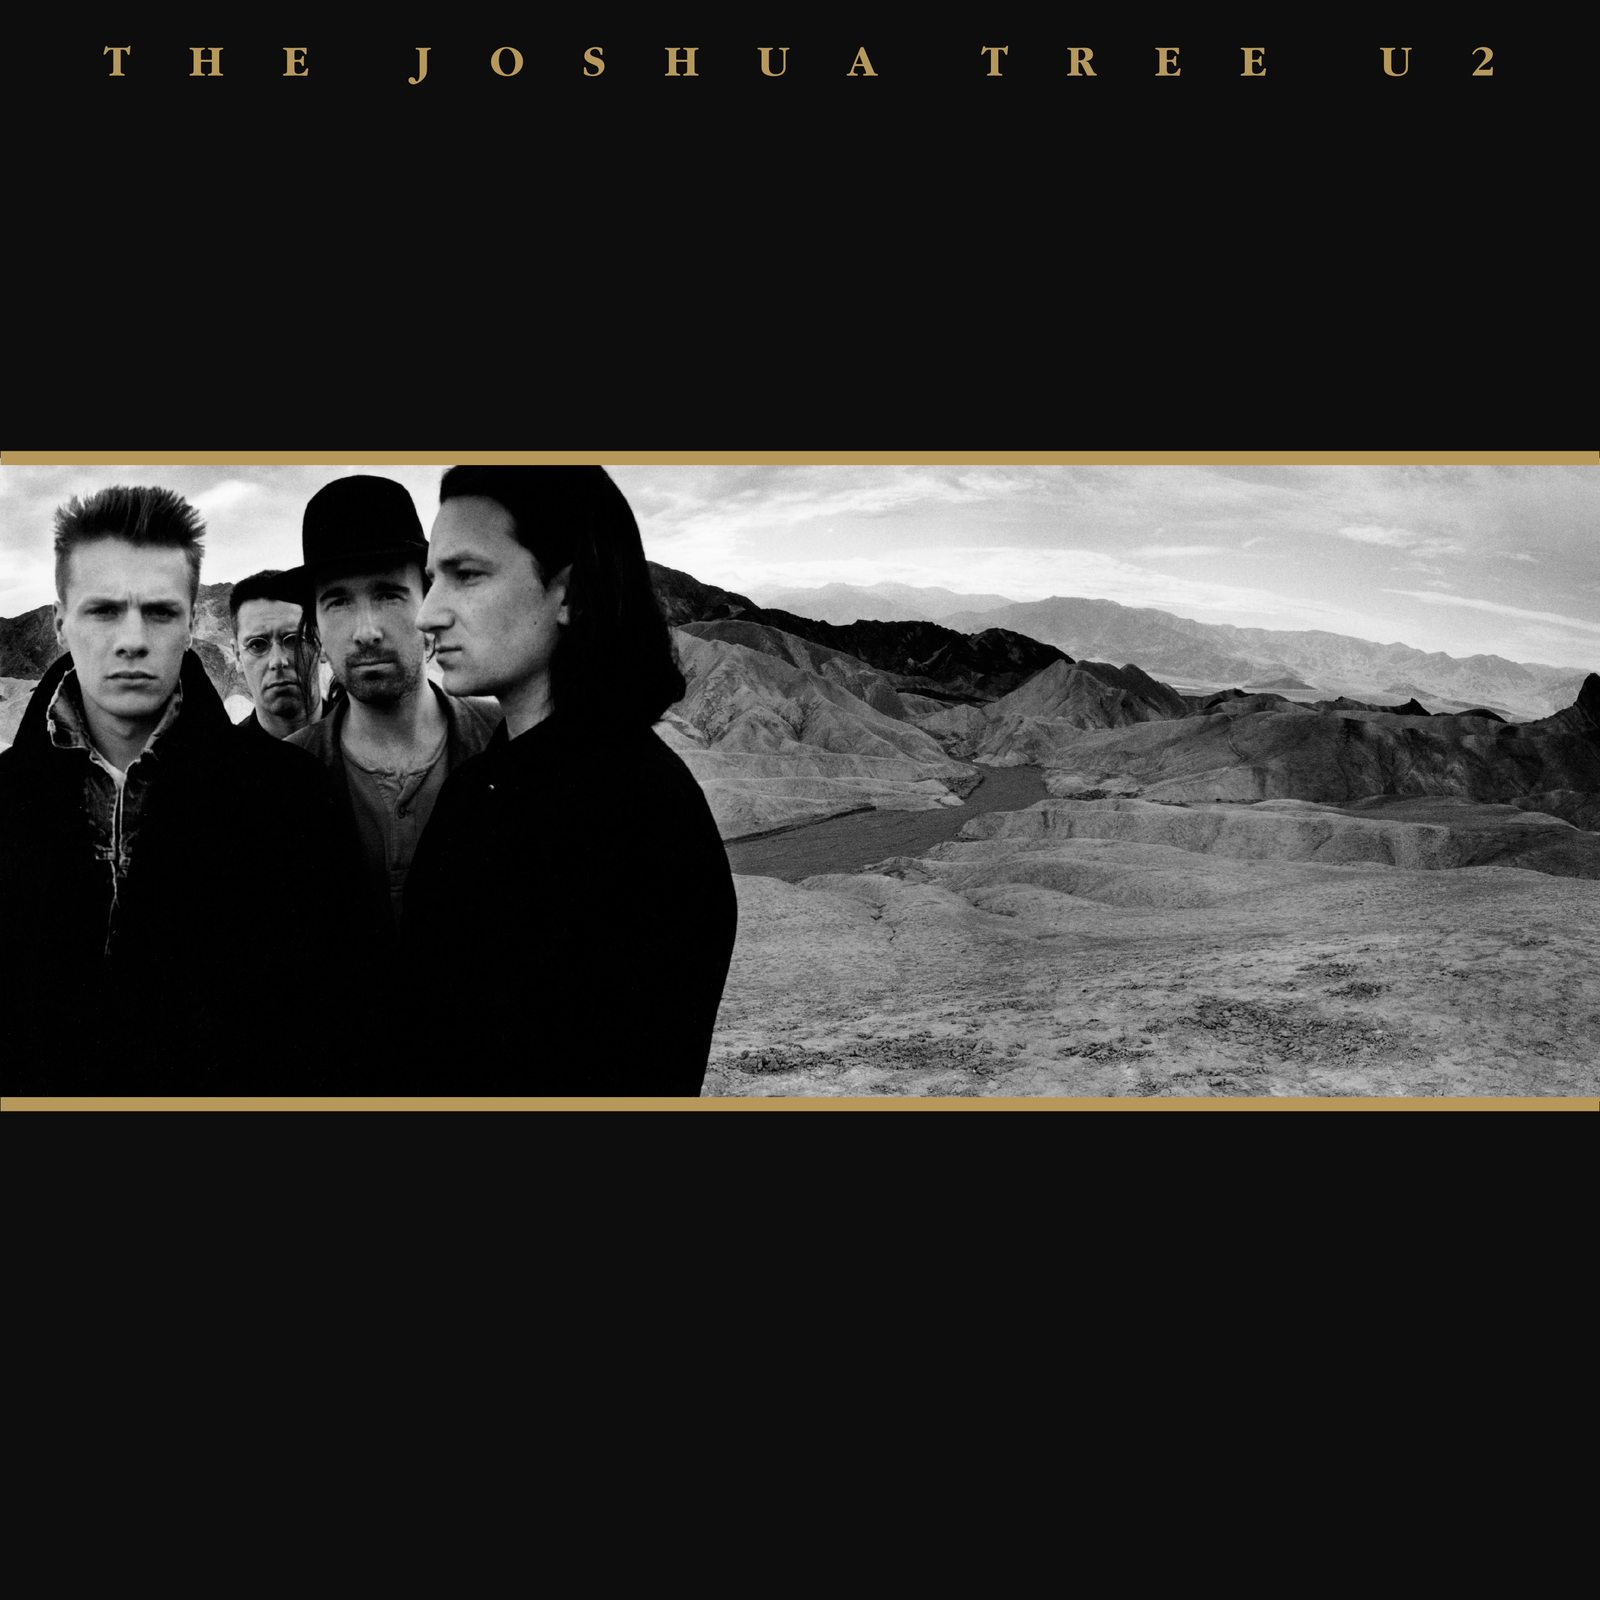 Joshua Tree - 30th Anniversary by U2 image